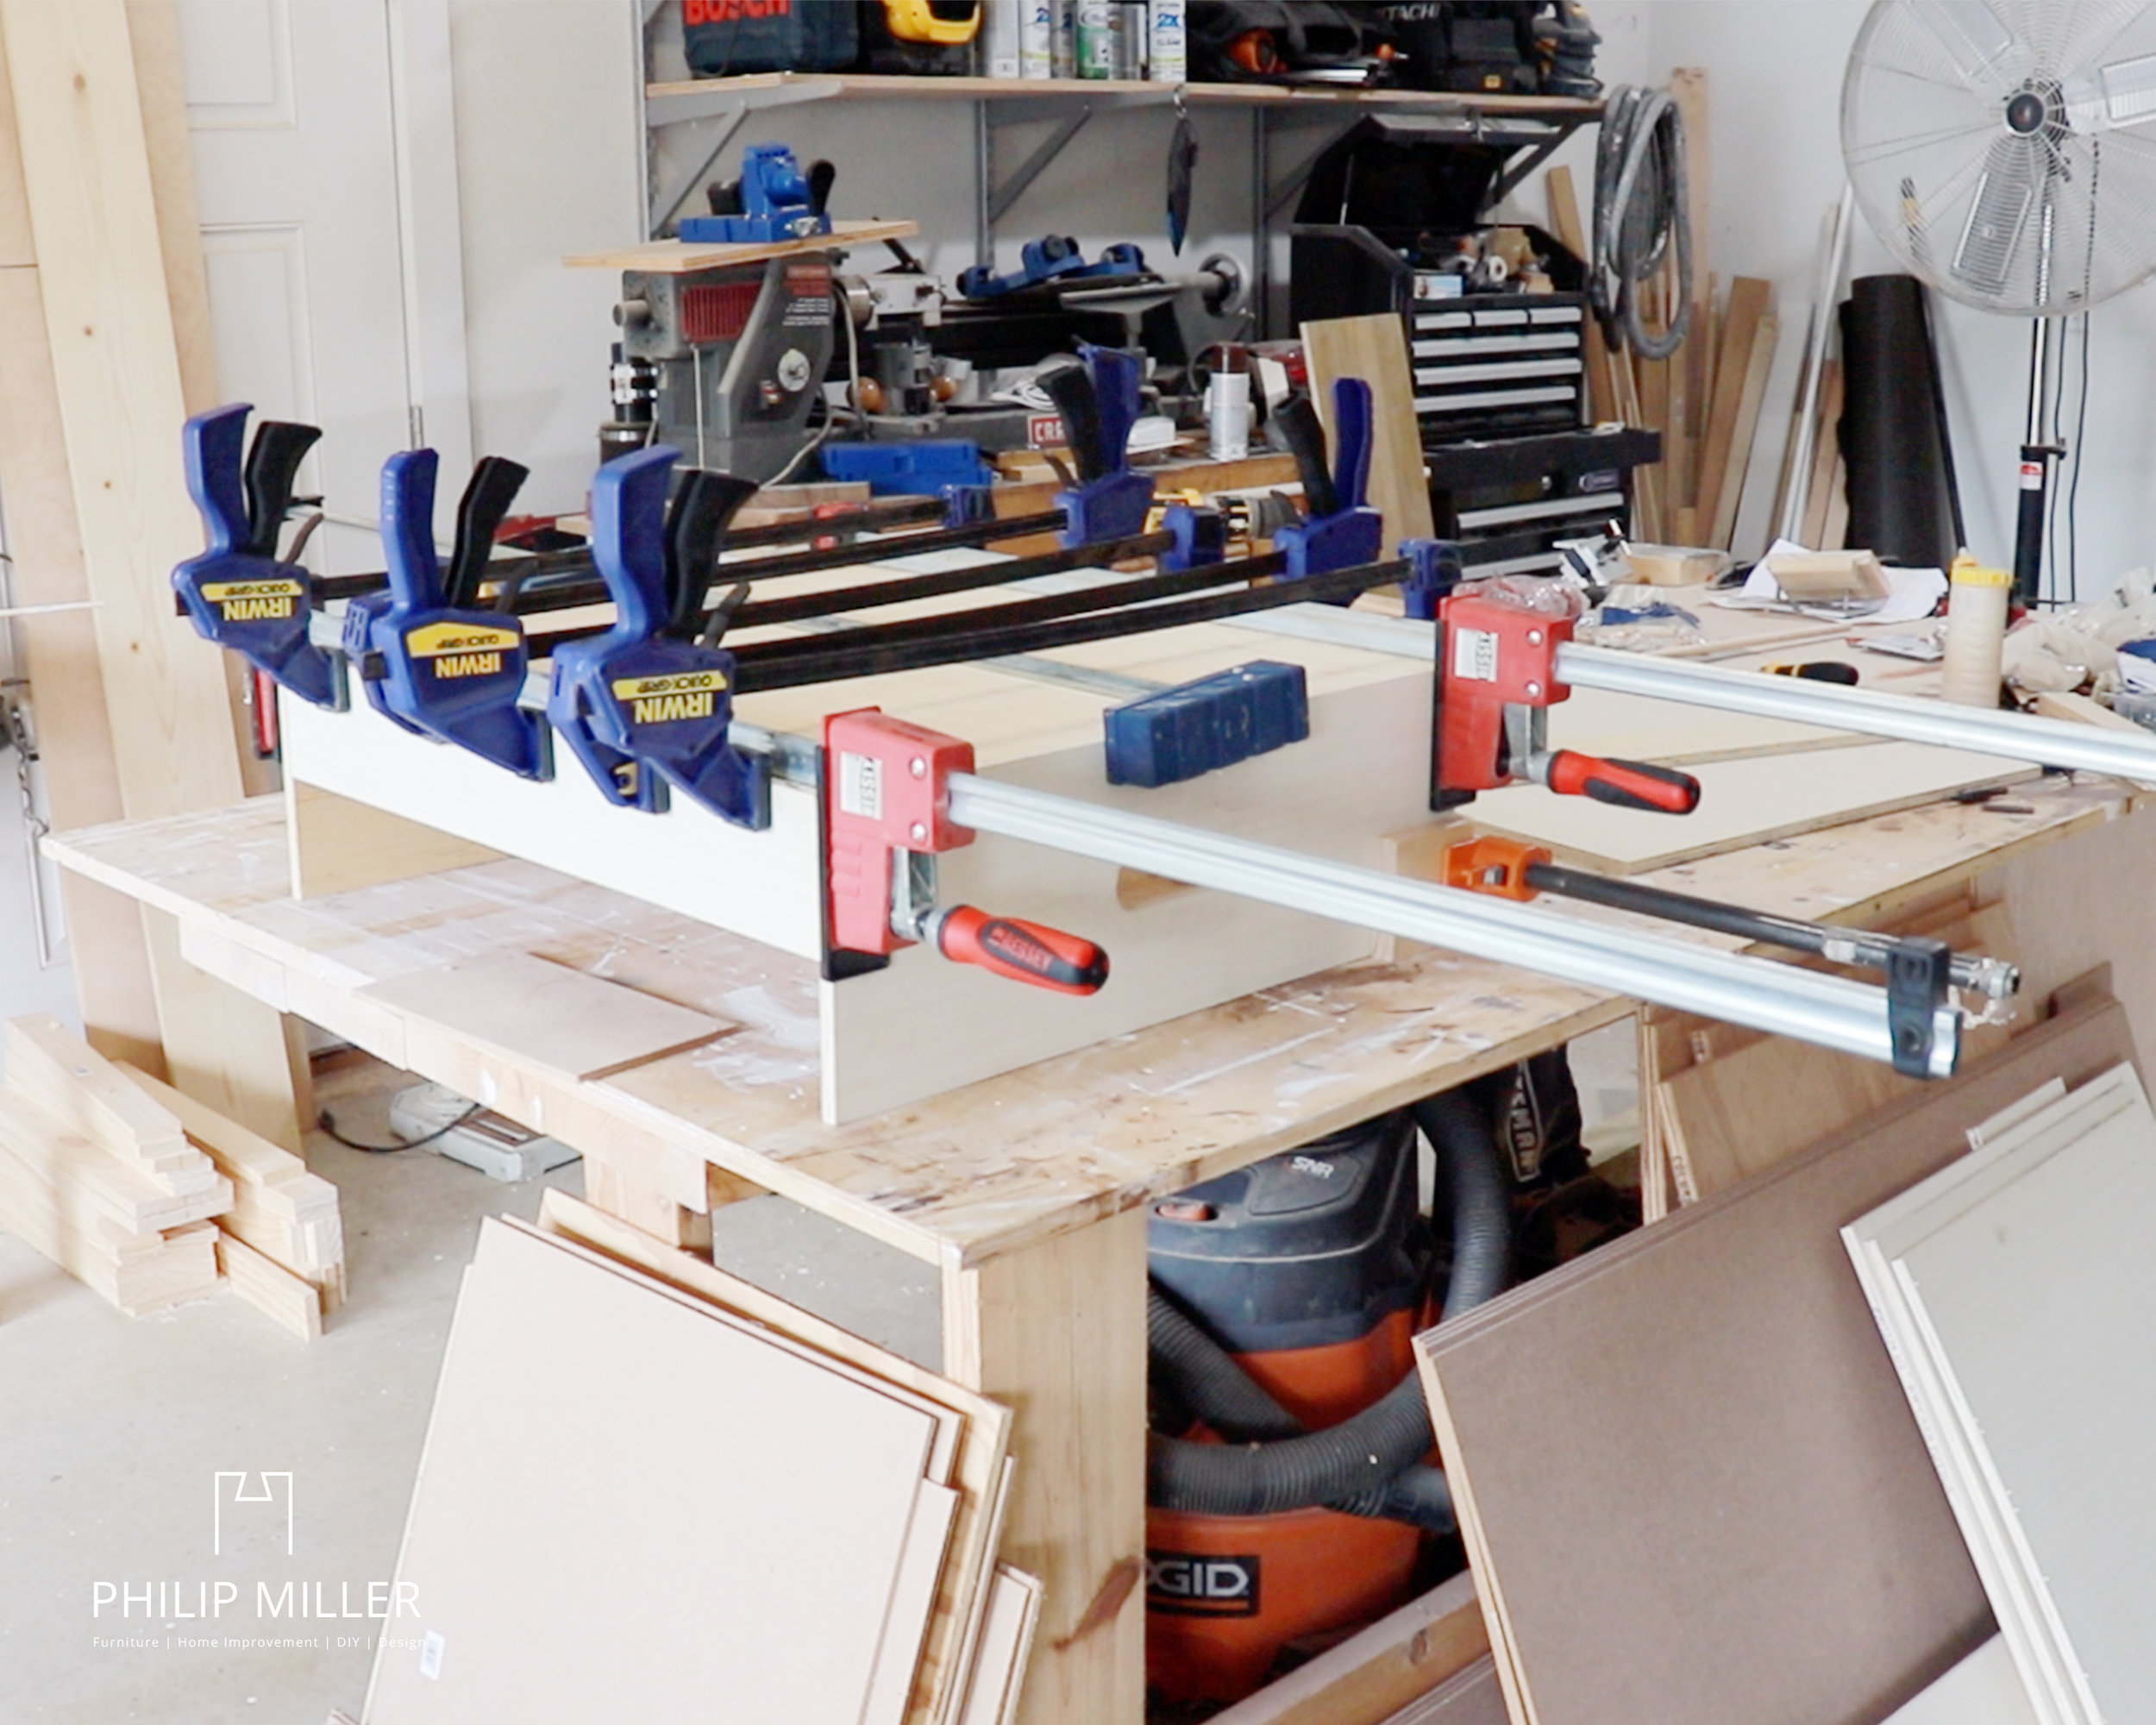 Clamping half inch plywood for a ring toss game using Irwin and Bessey clamps on a work bench